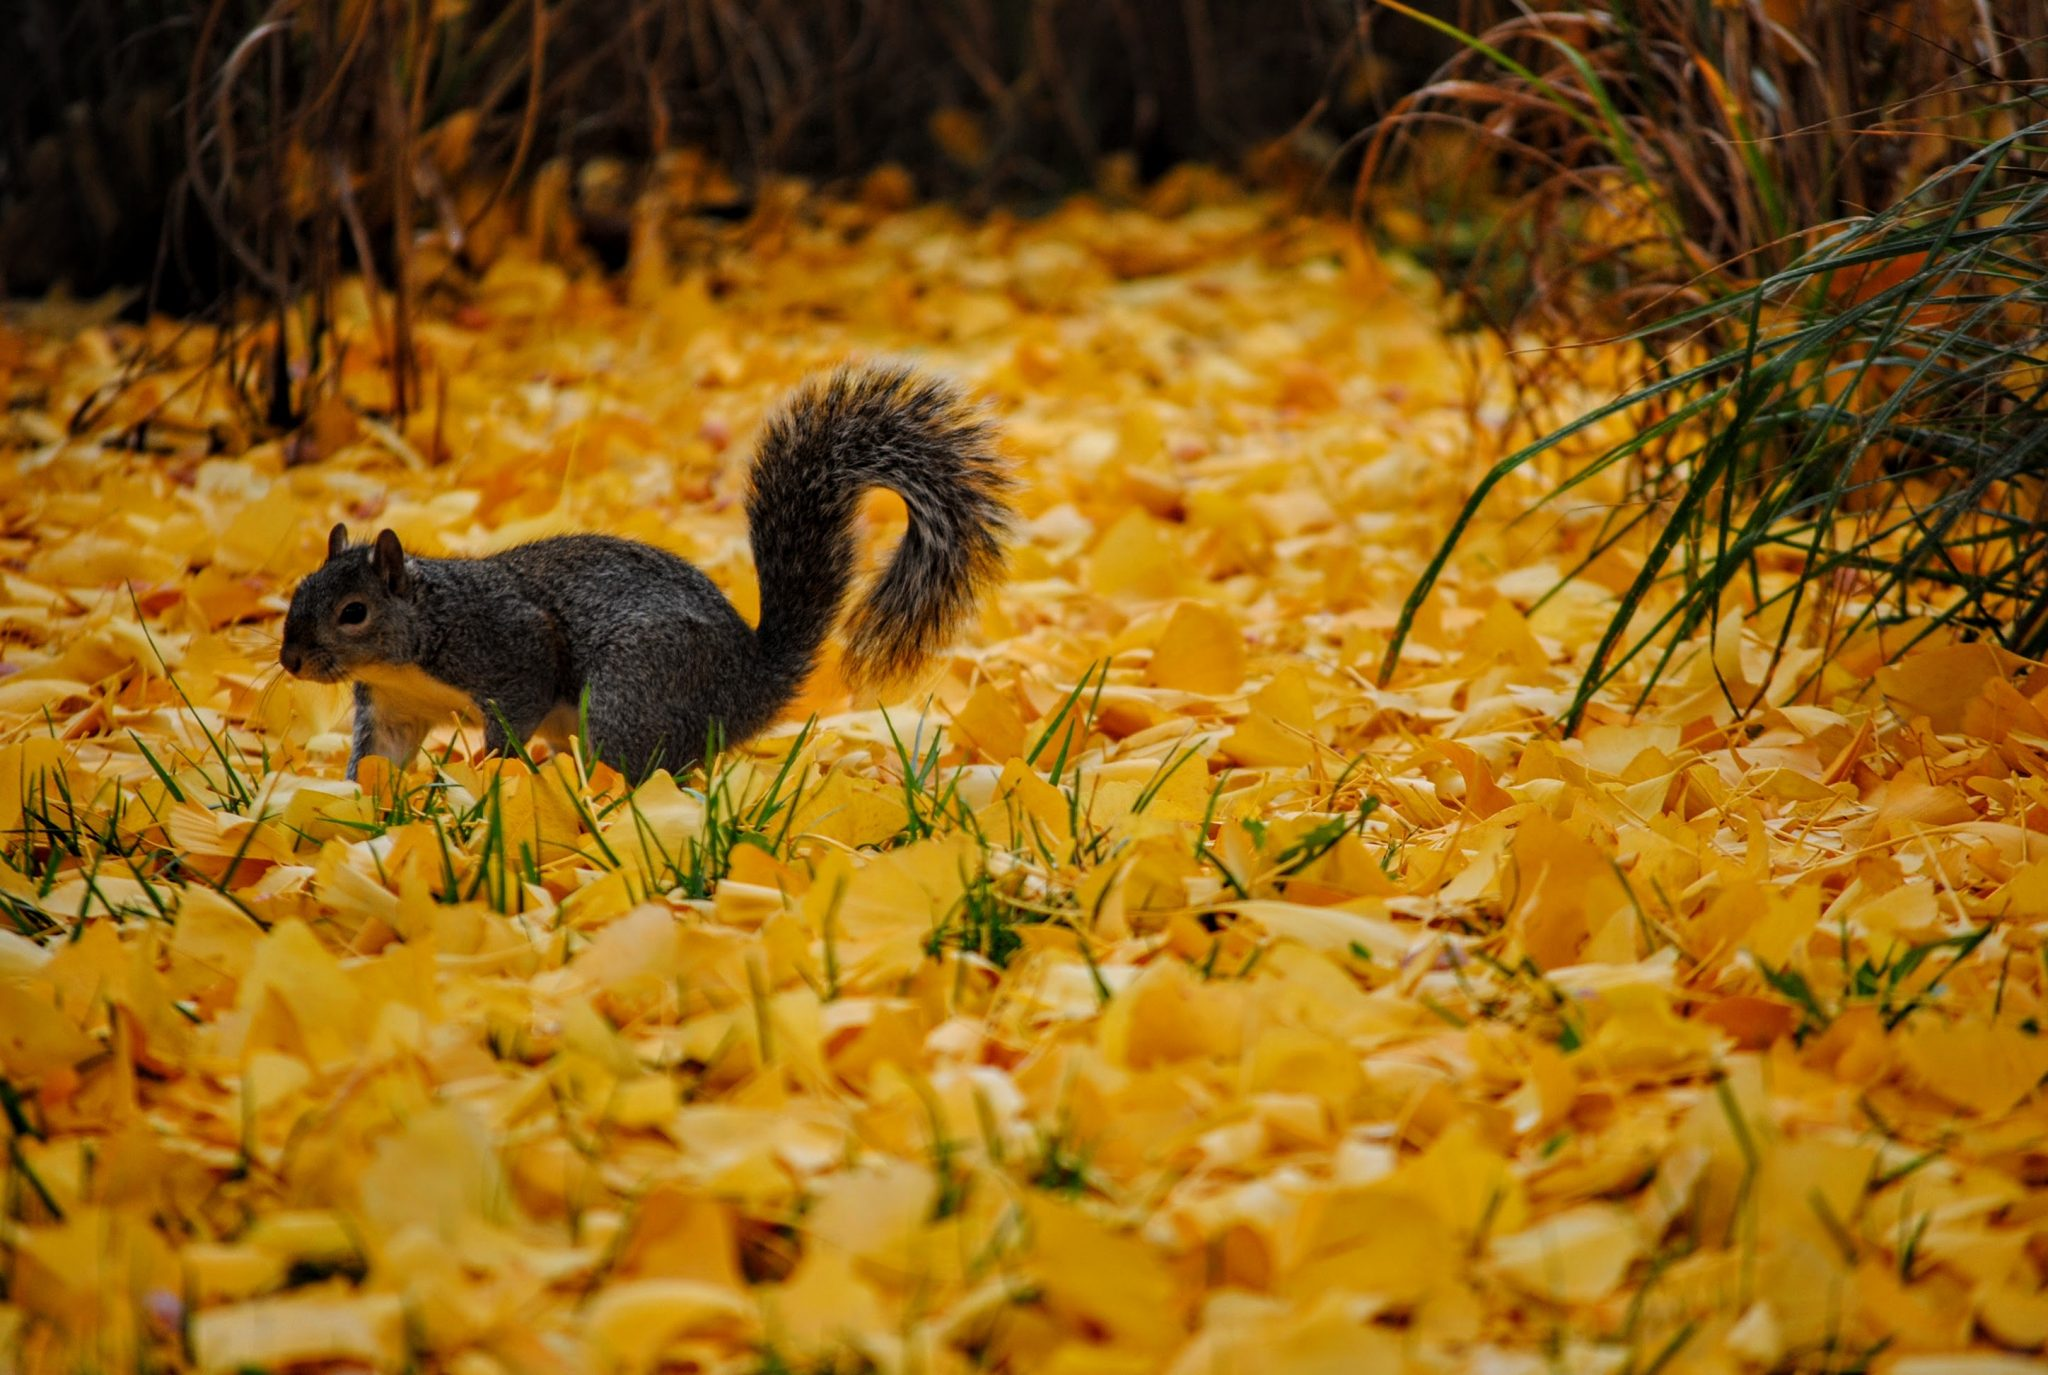 Squirrel walking in yellow leaves.